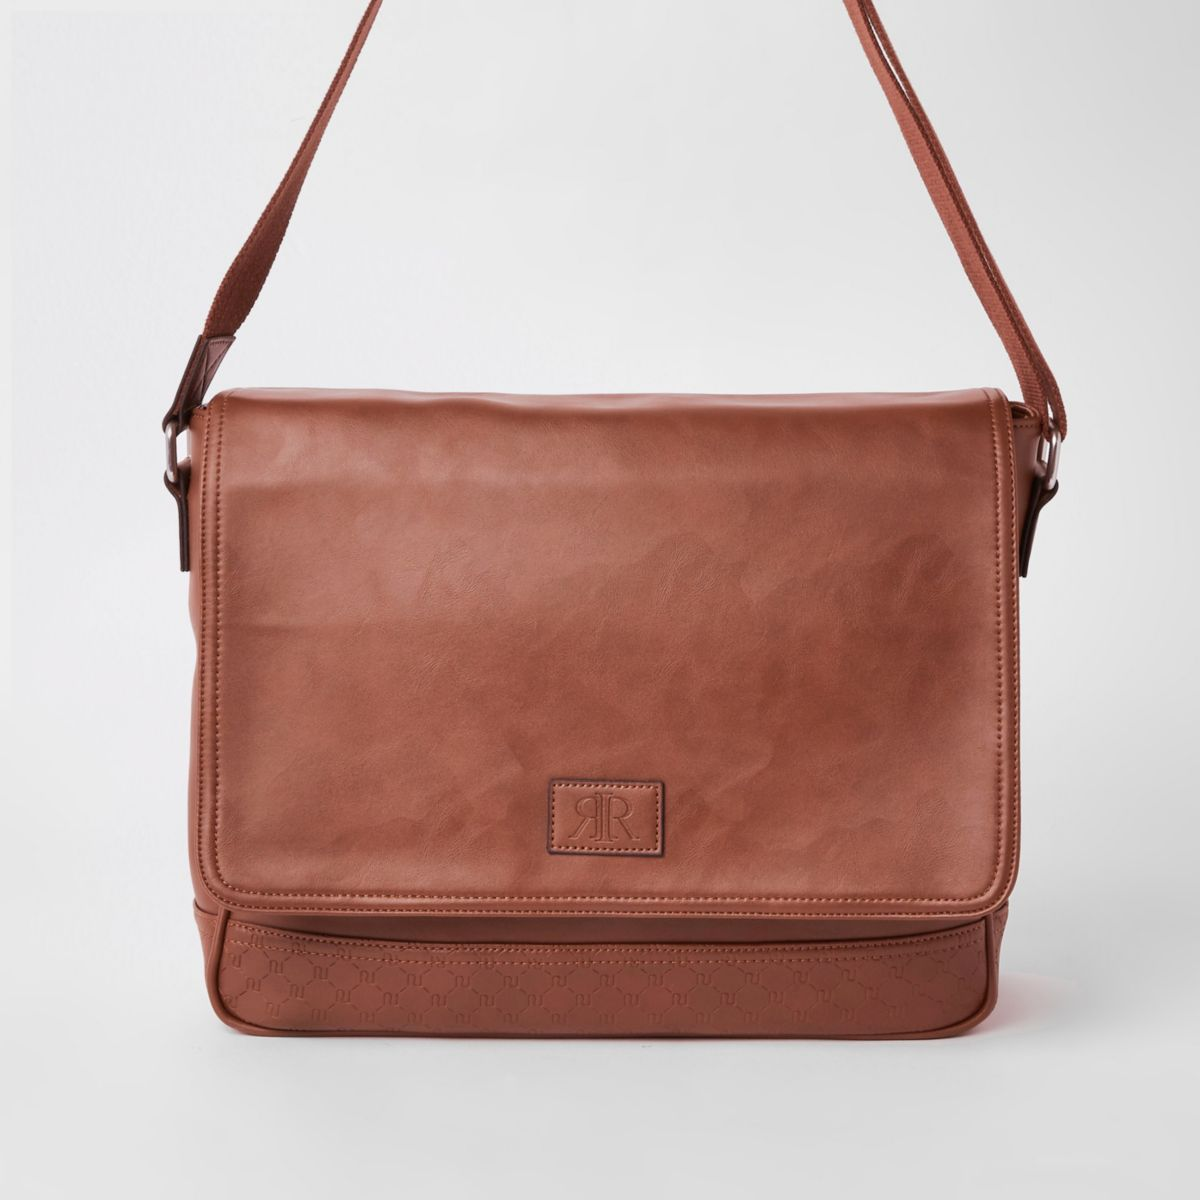 Brown RI monogram flapover satchel bag